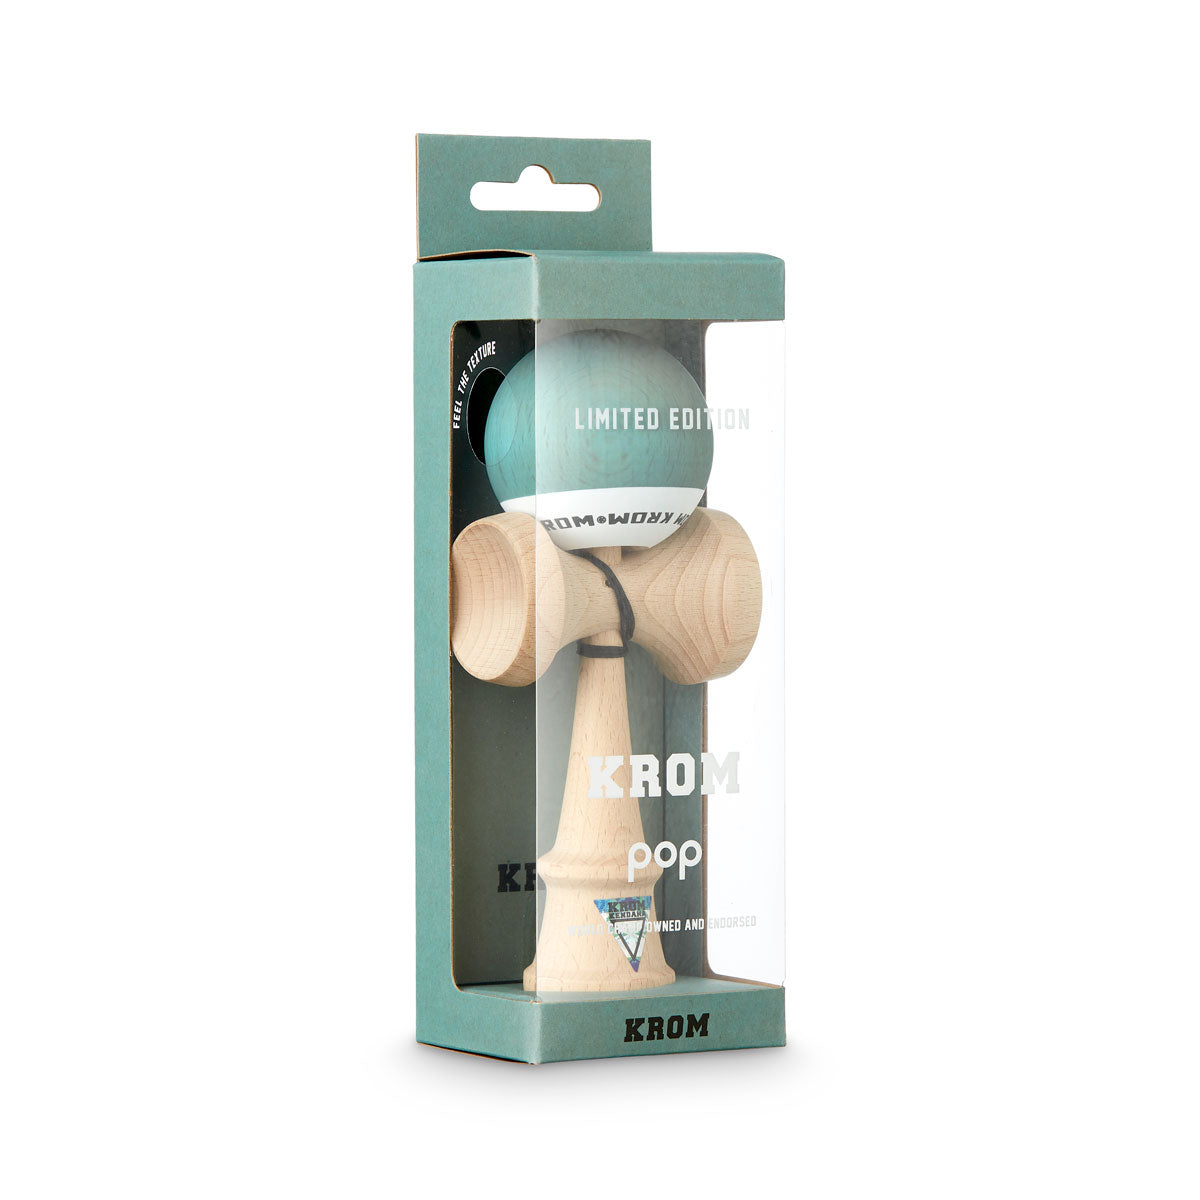 Limited Edition KROM POP Pistachio Kendama boxed